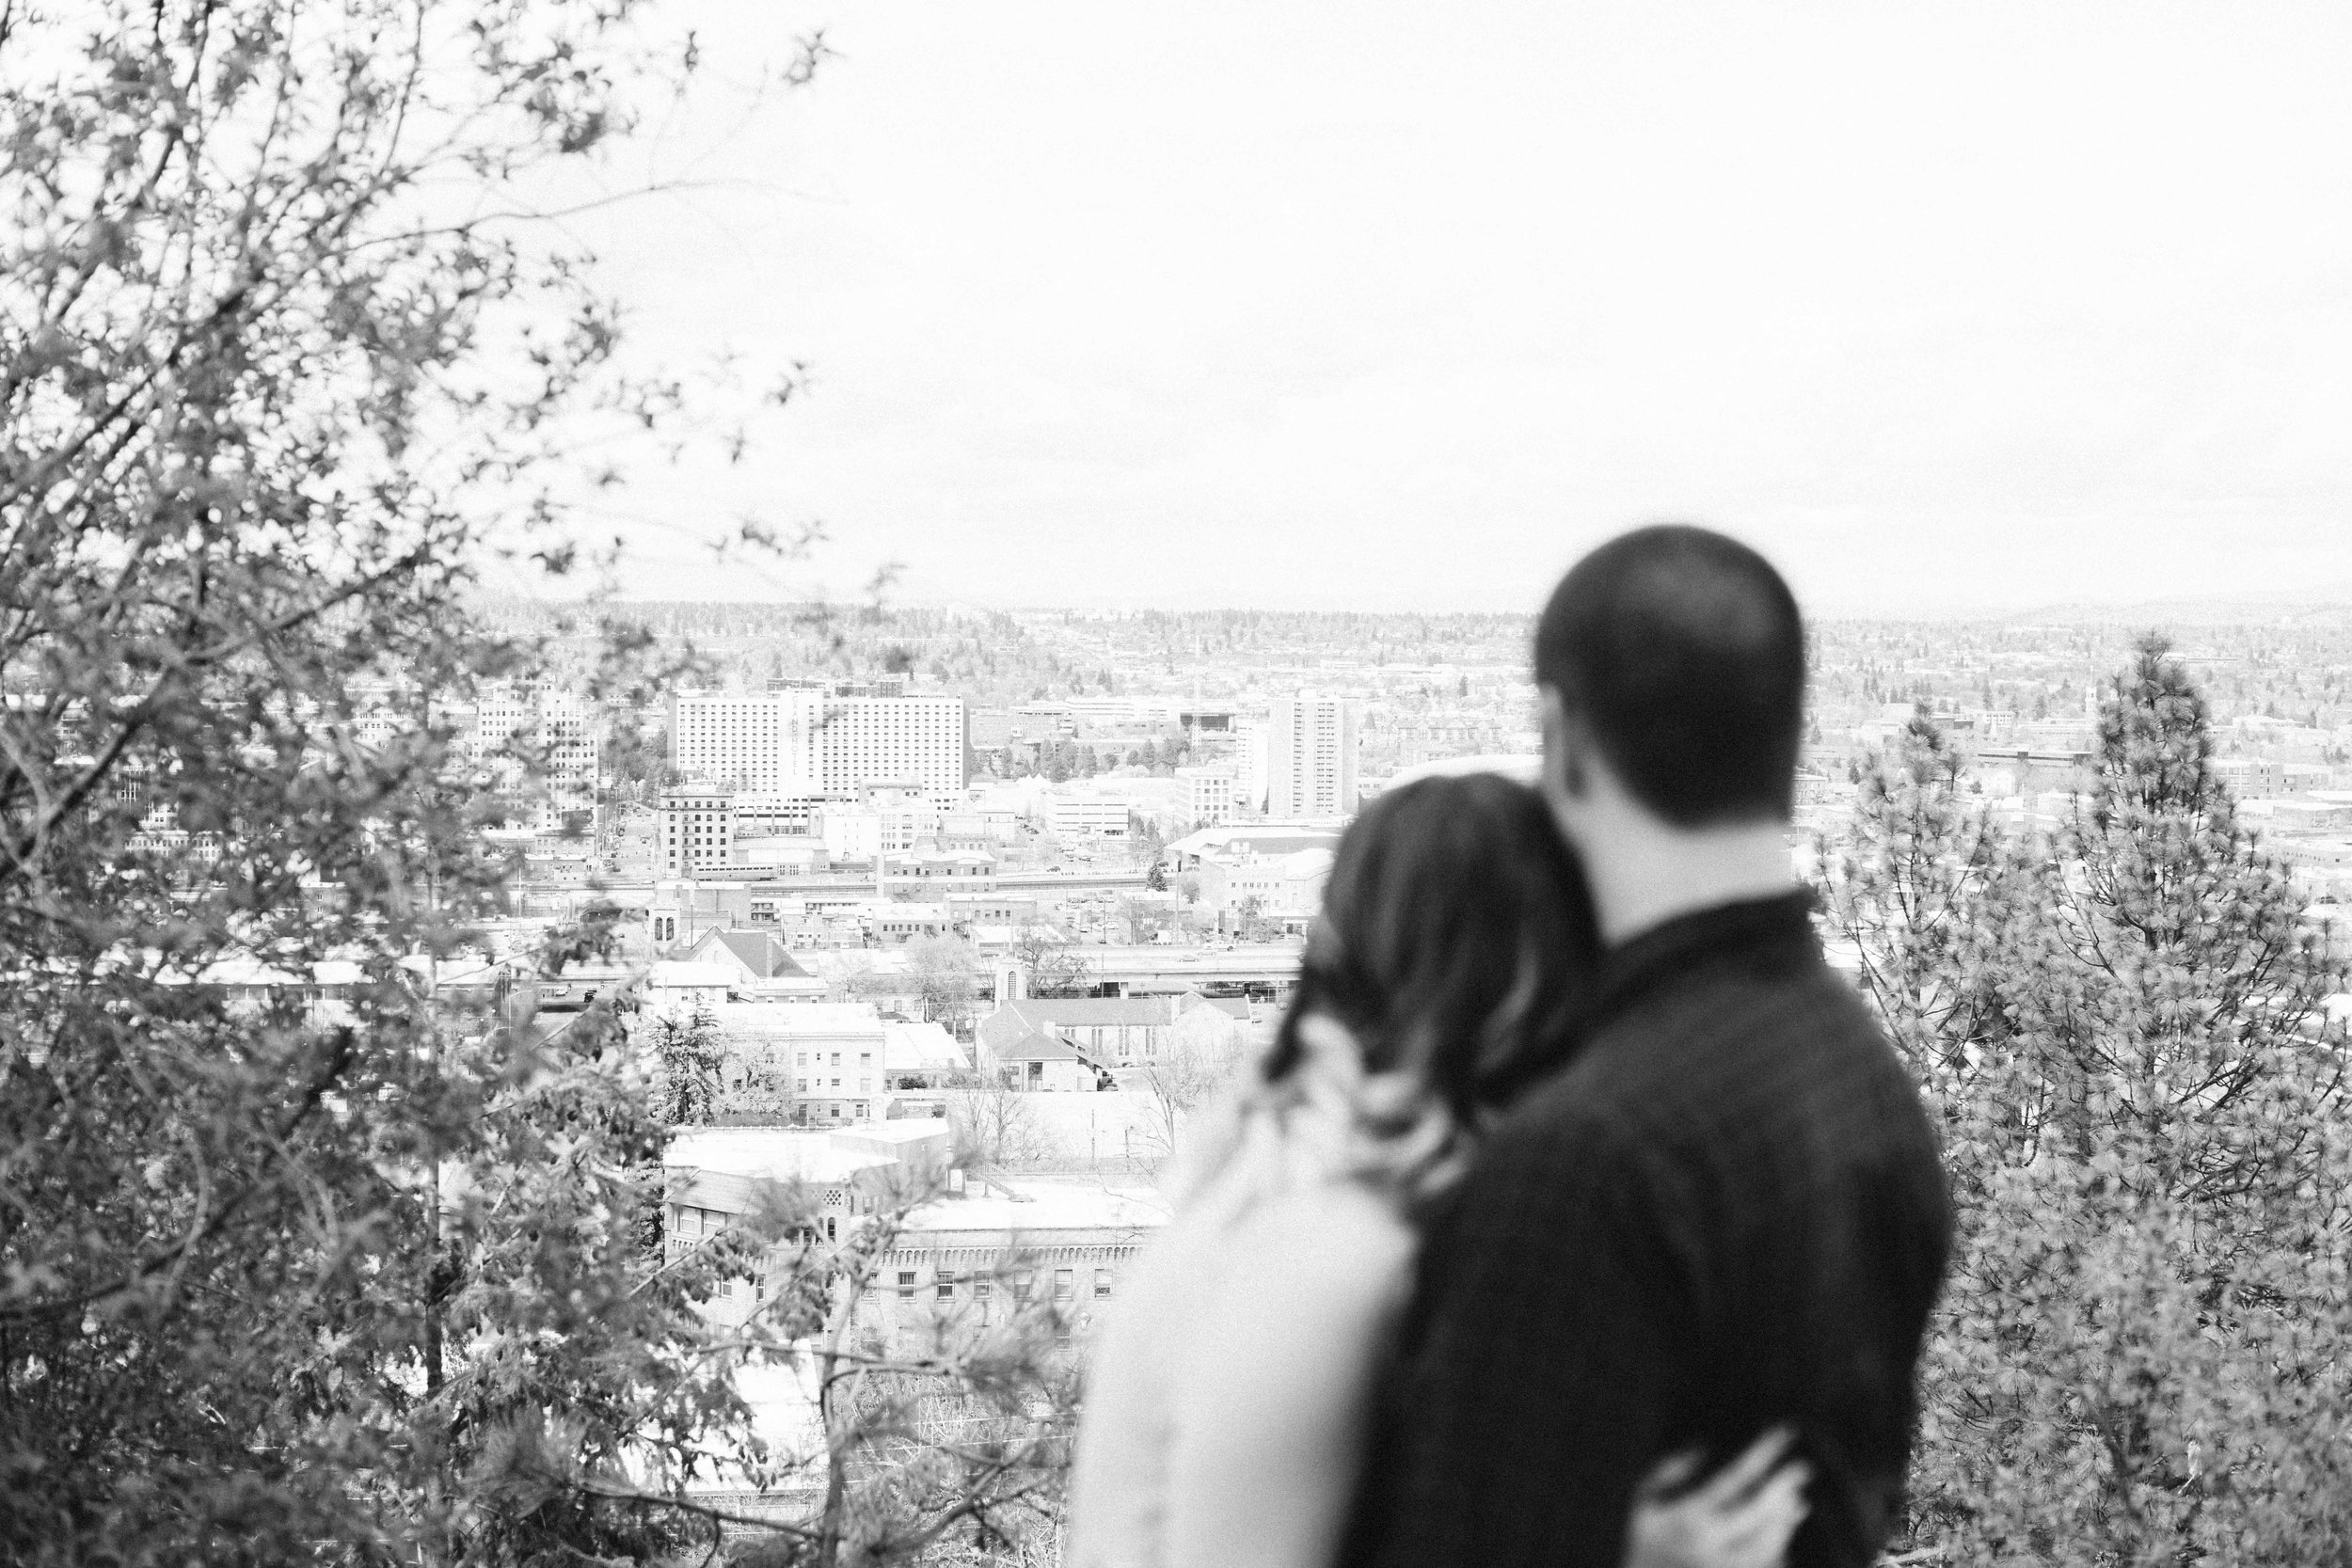 spokane-wedding-photographer-62.jpg